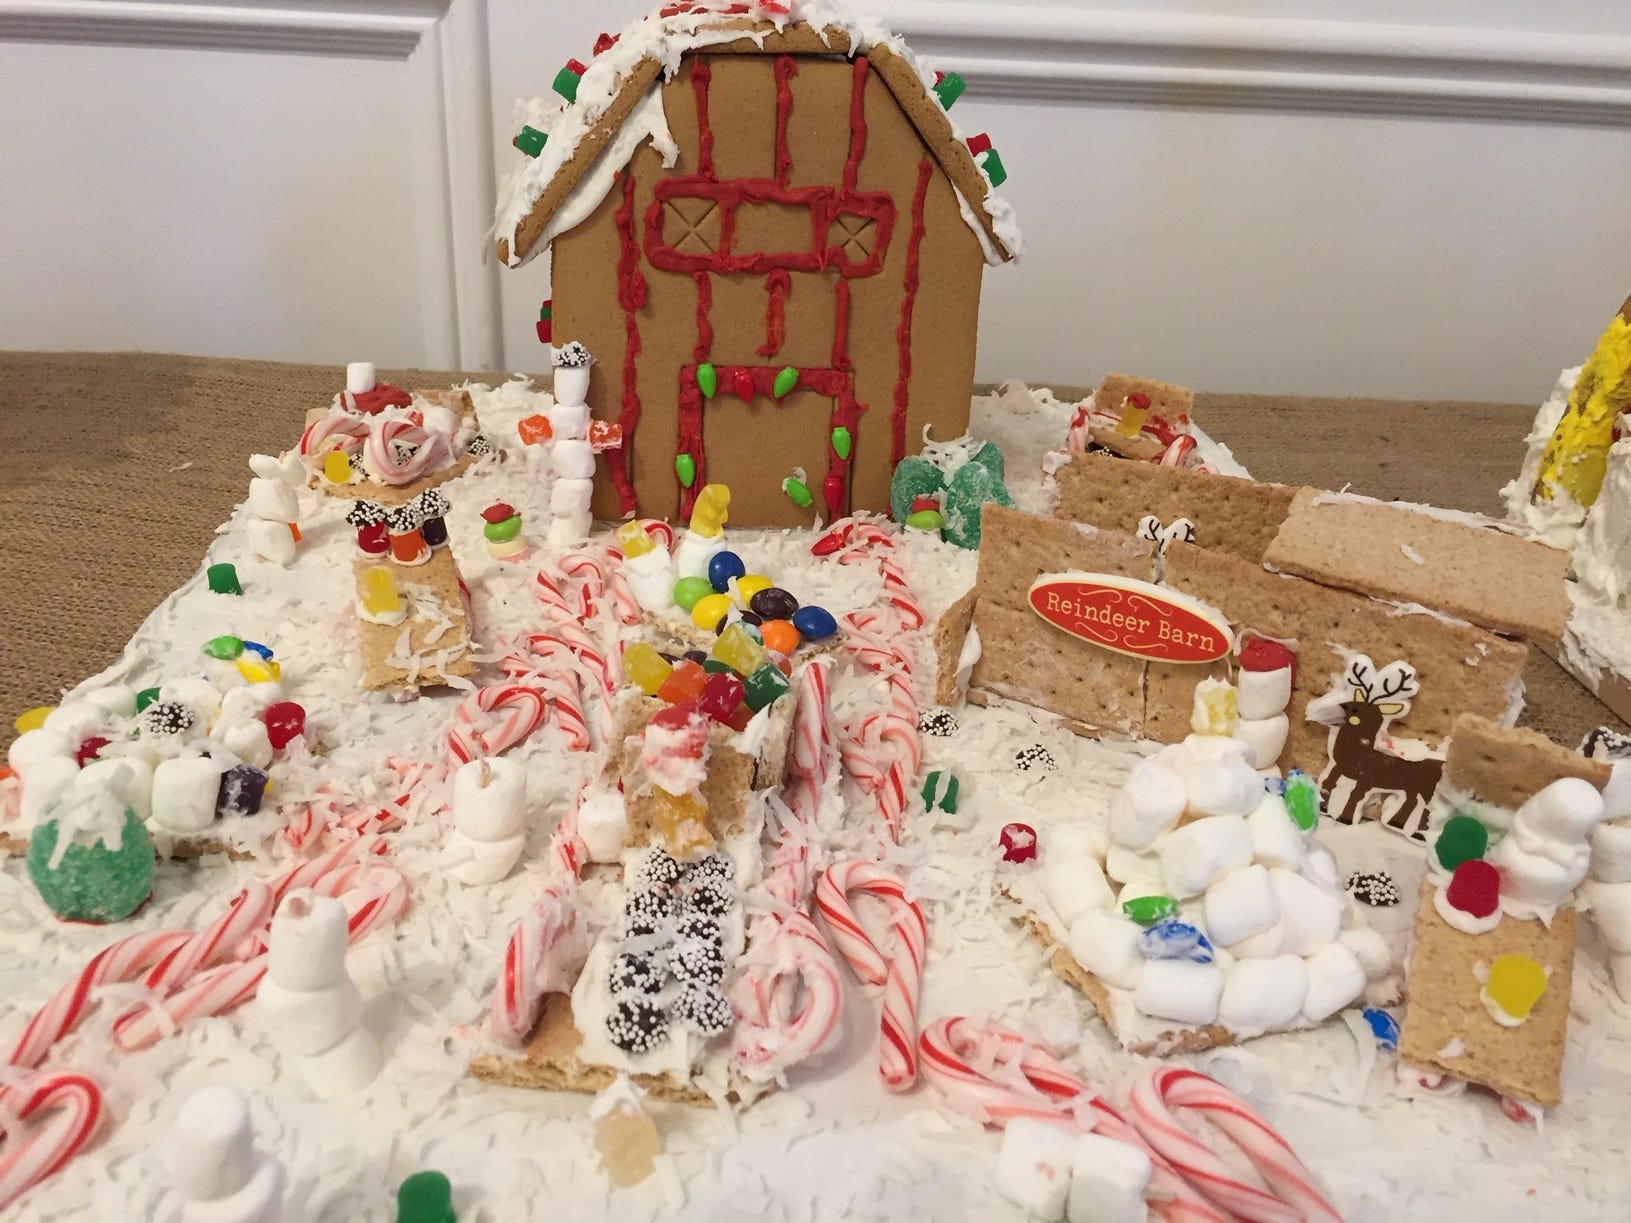 """Santa's Workshop, Winter Village"" by Scout Troop CO284 of Rockaway, 4th graders, at the 2018 Gingerbread Wonderland at the Frelinghuysen Arboretum. Scout category."